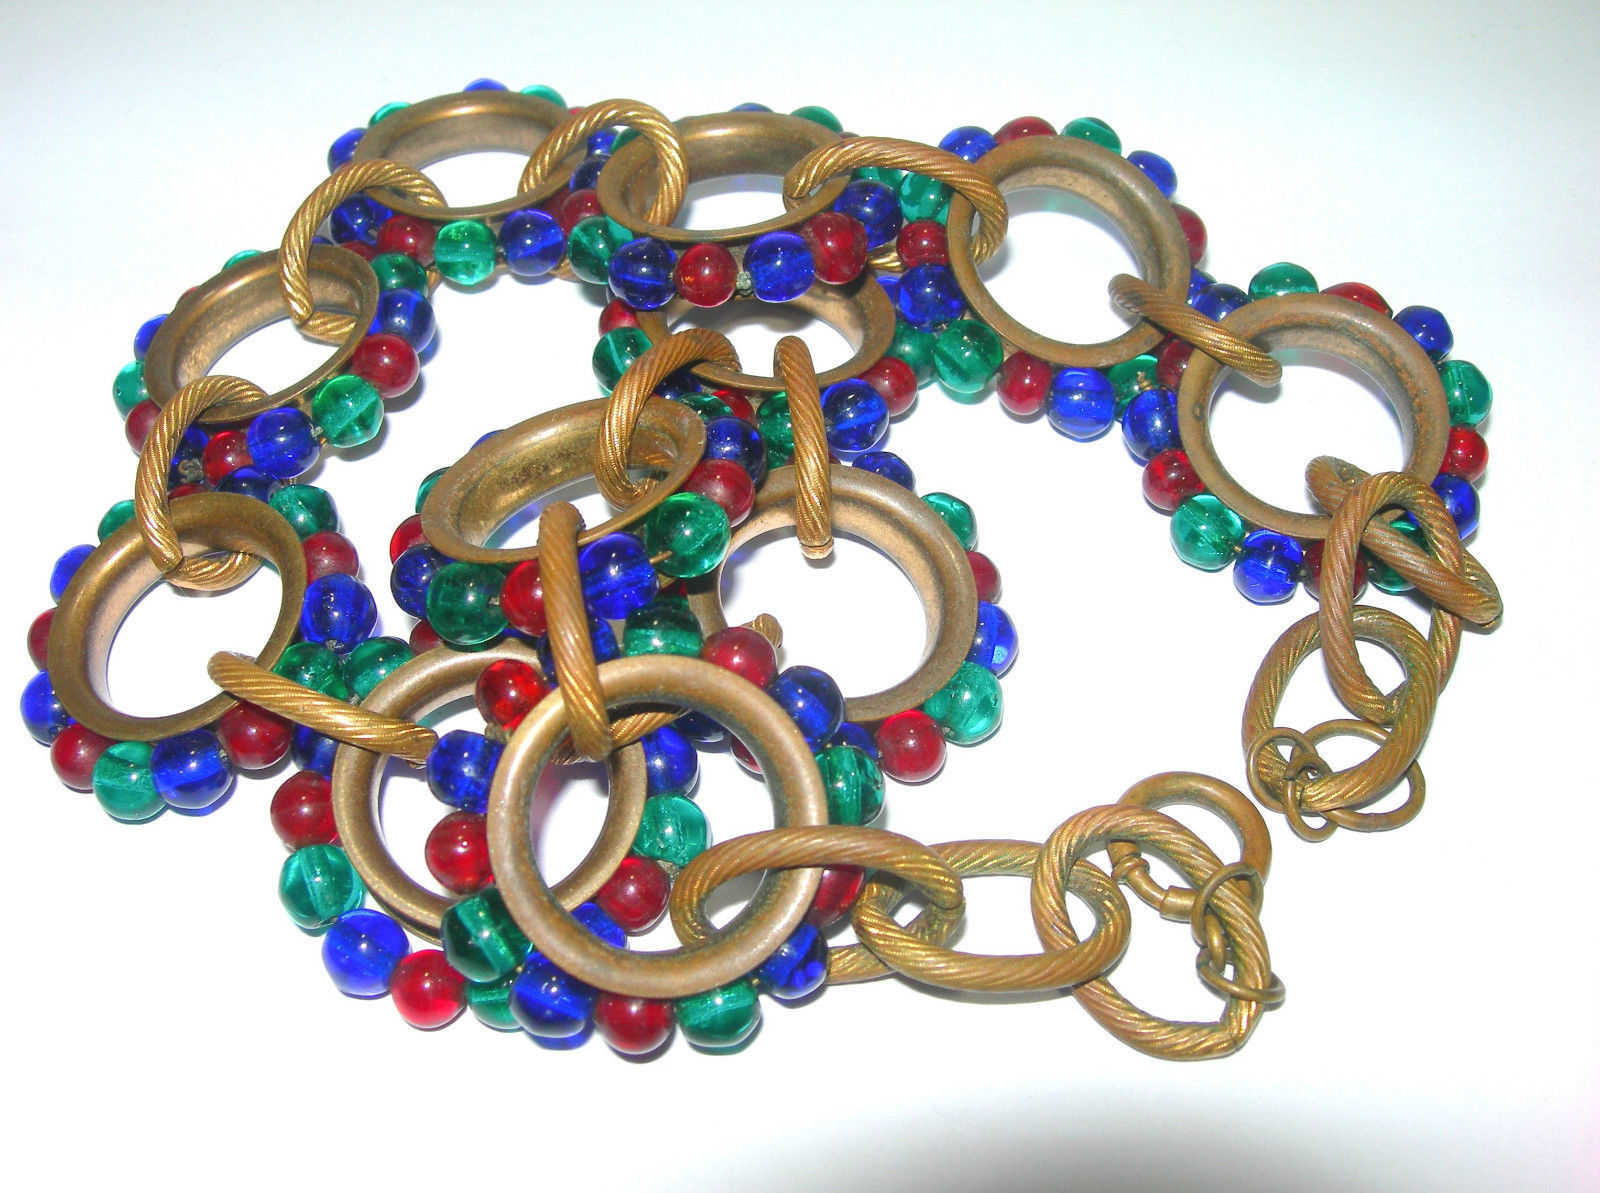 VINTAGE UNSIGNED 1930s POURED ART GLASS RED GREEN BLUE BRASS NECKLACE